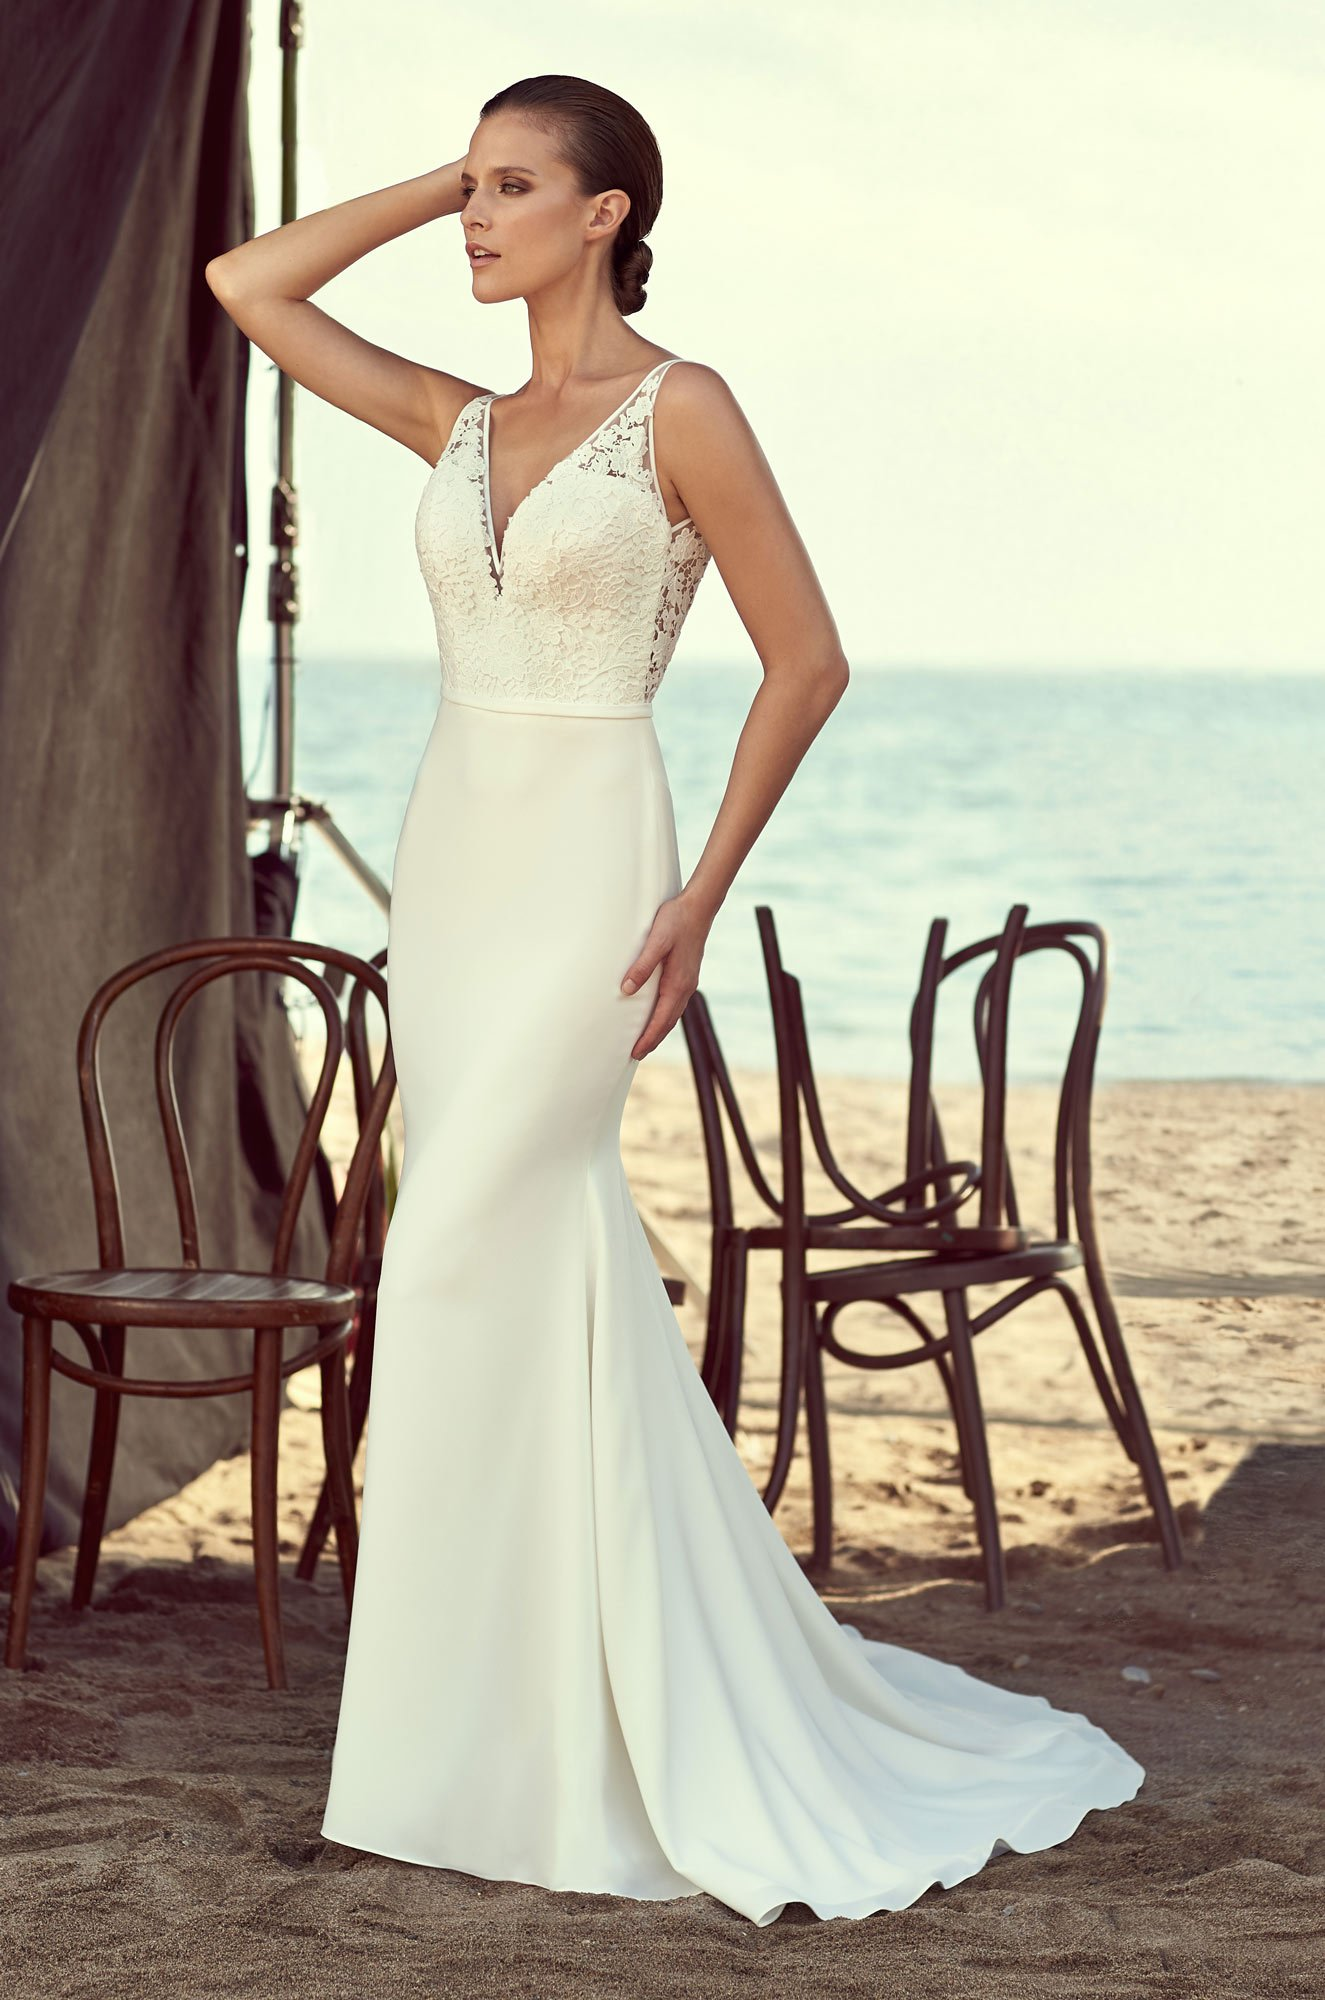 Sleek Fitted Wedding Dress - Style #2195 | Mikaella Bridal